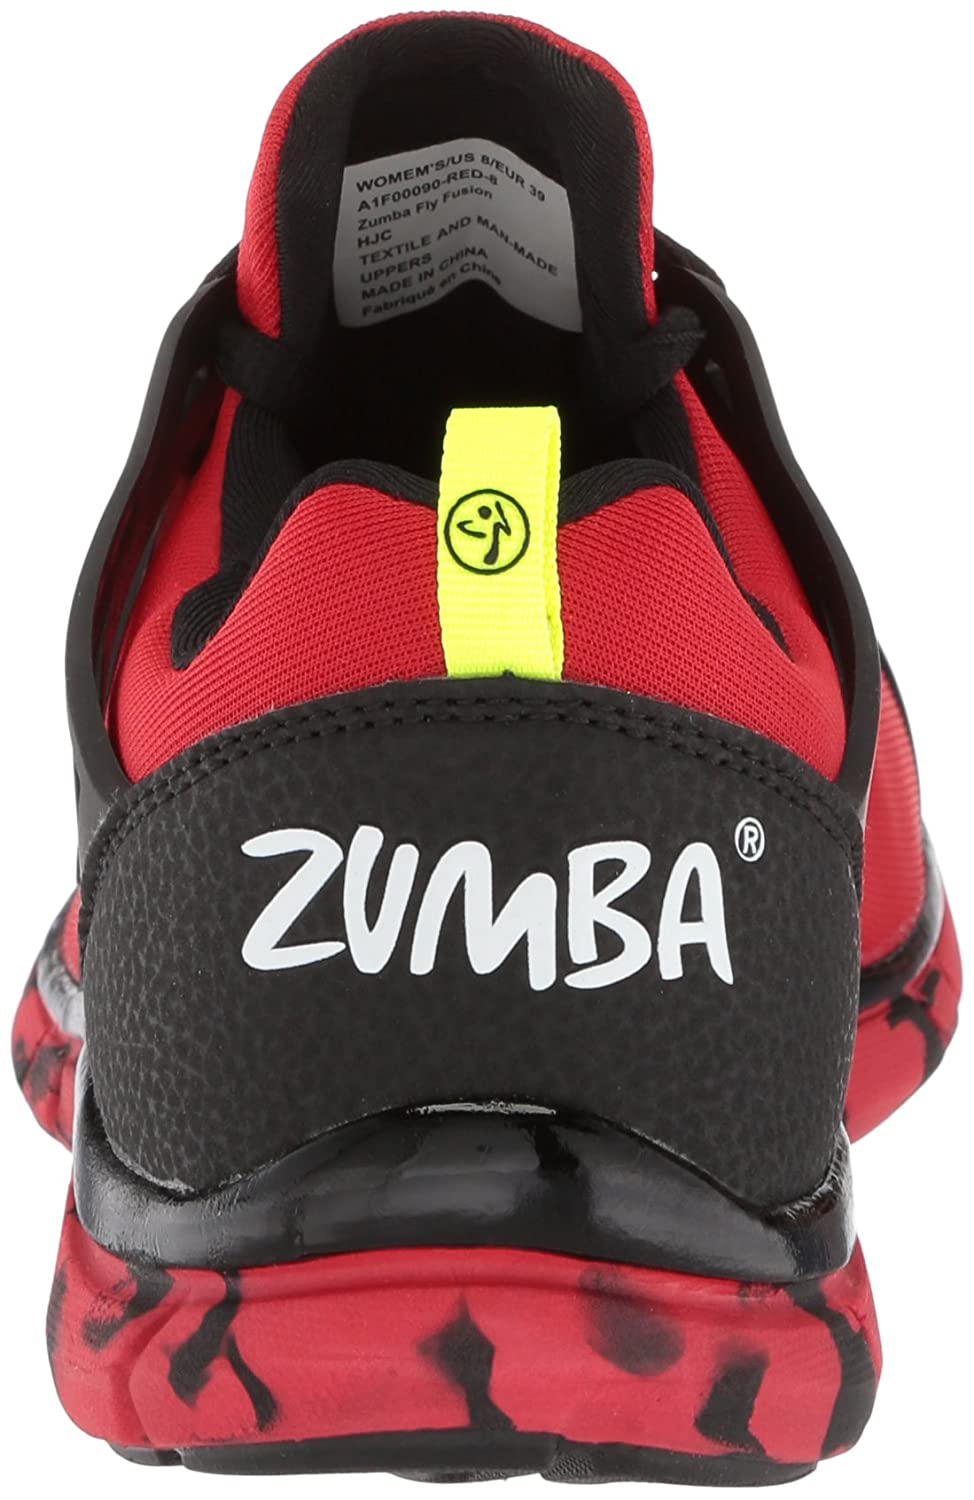 Zumba Women's Fly Fusion Athletic Dance Workout Sneakers with Compression Cushioning B078WDVHVG 7.5 B(M) US|Red